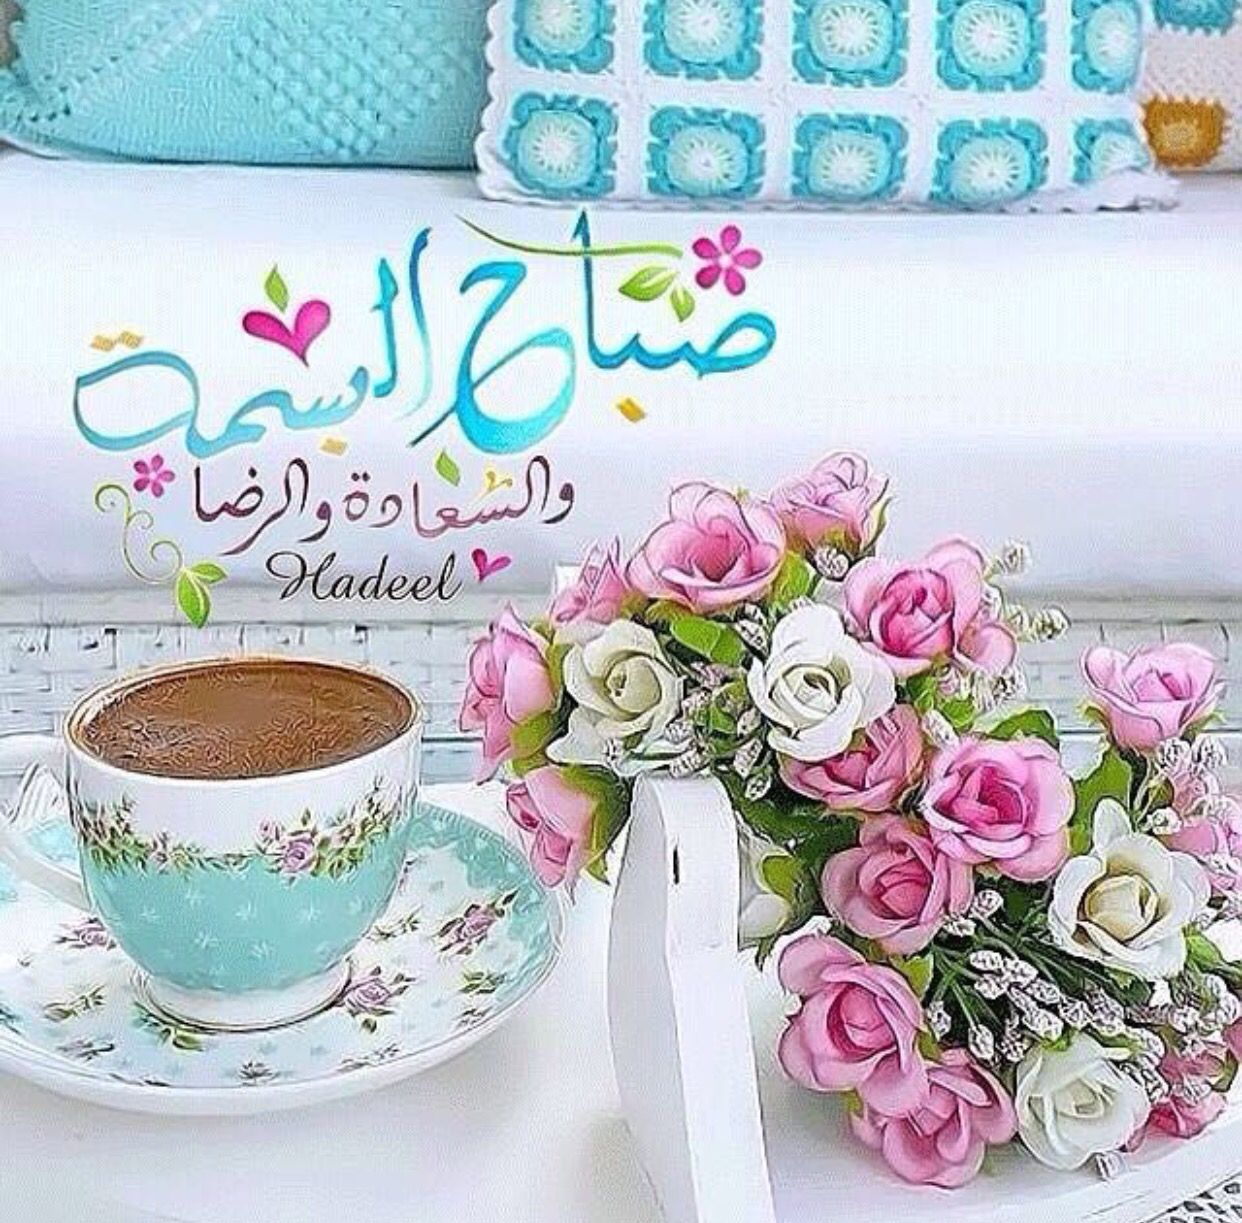 صباح البسمة والسعادة Good Morning Good Night Good Night Messages Good Morning Images